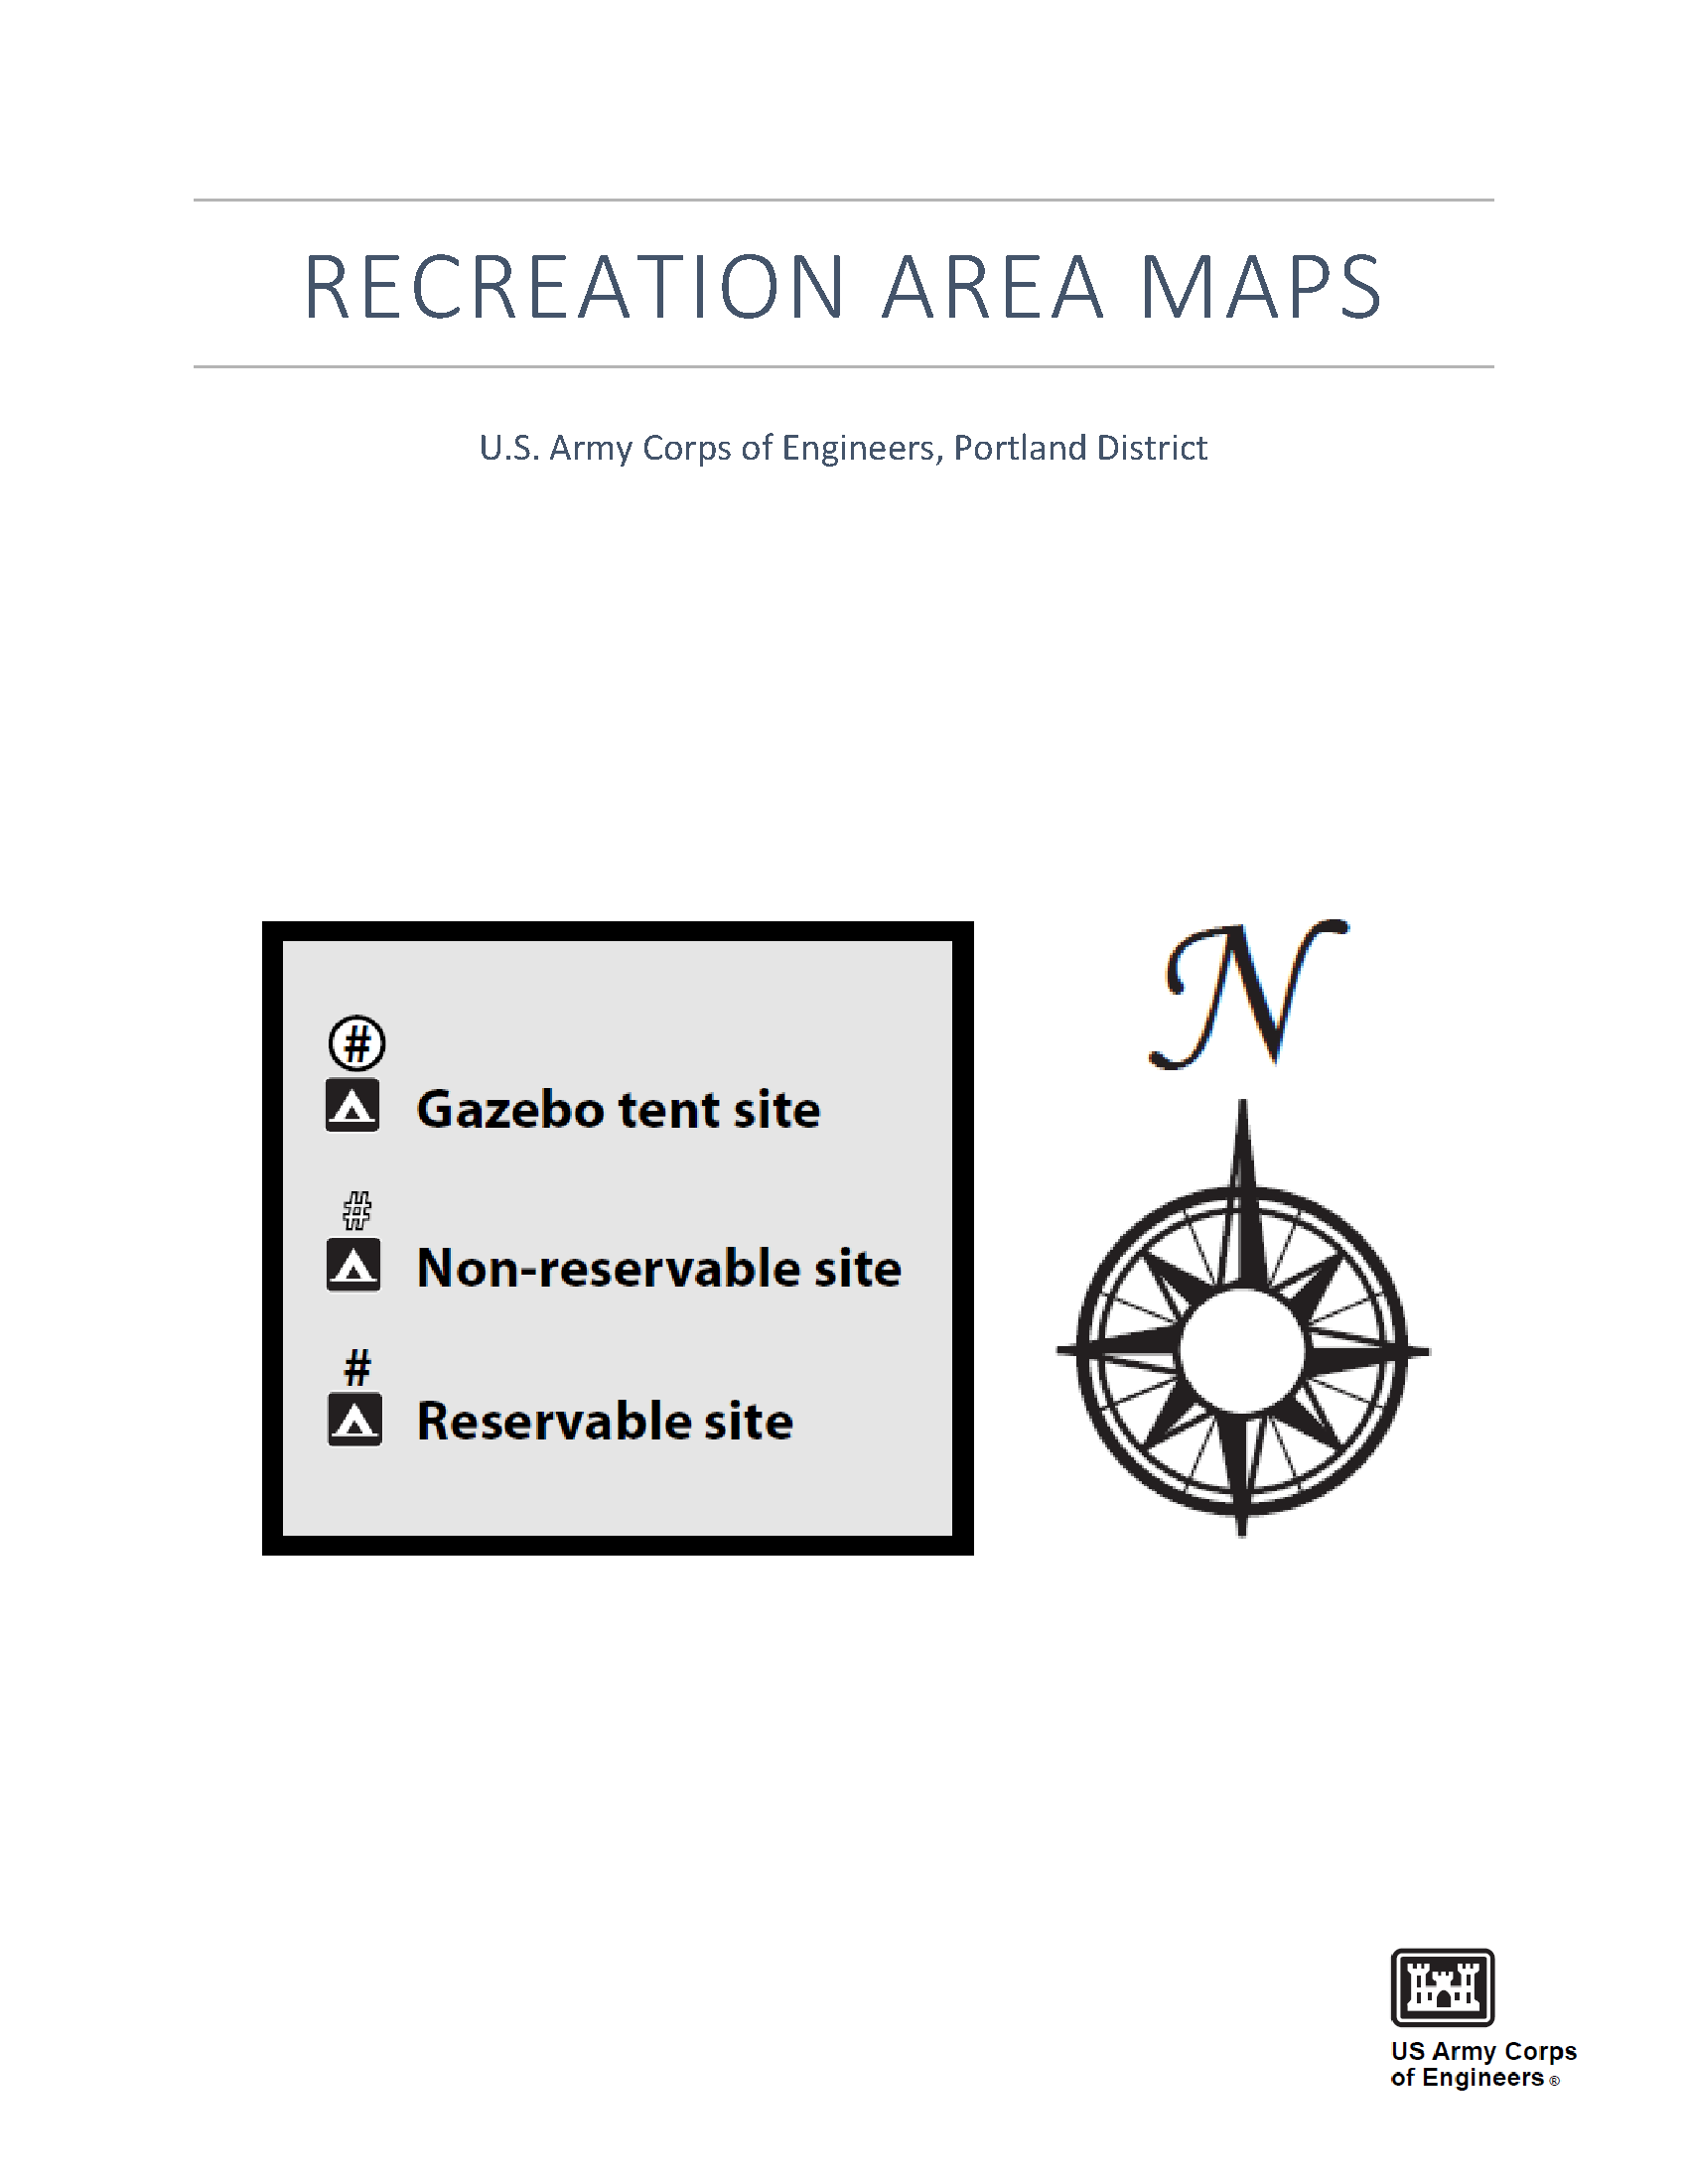 Recreation Area Maps Maps Usace Digital Library - Us-army-corps-of-engineers-district-map